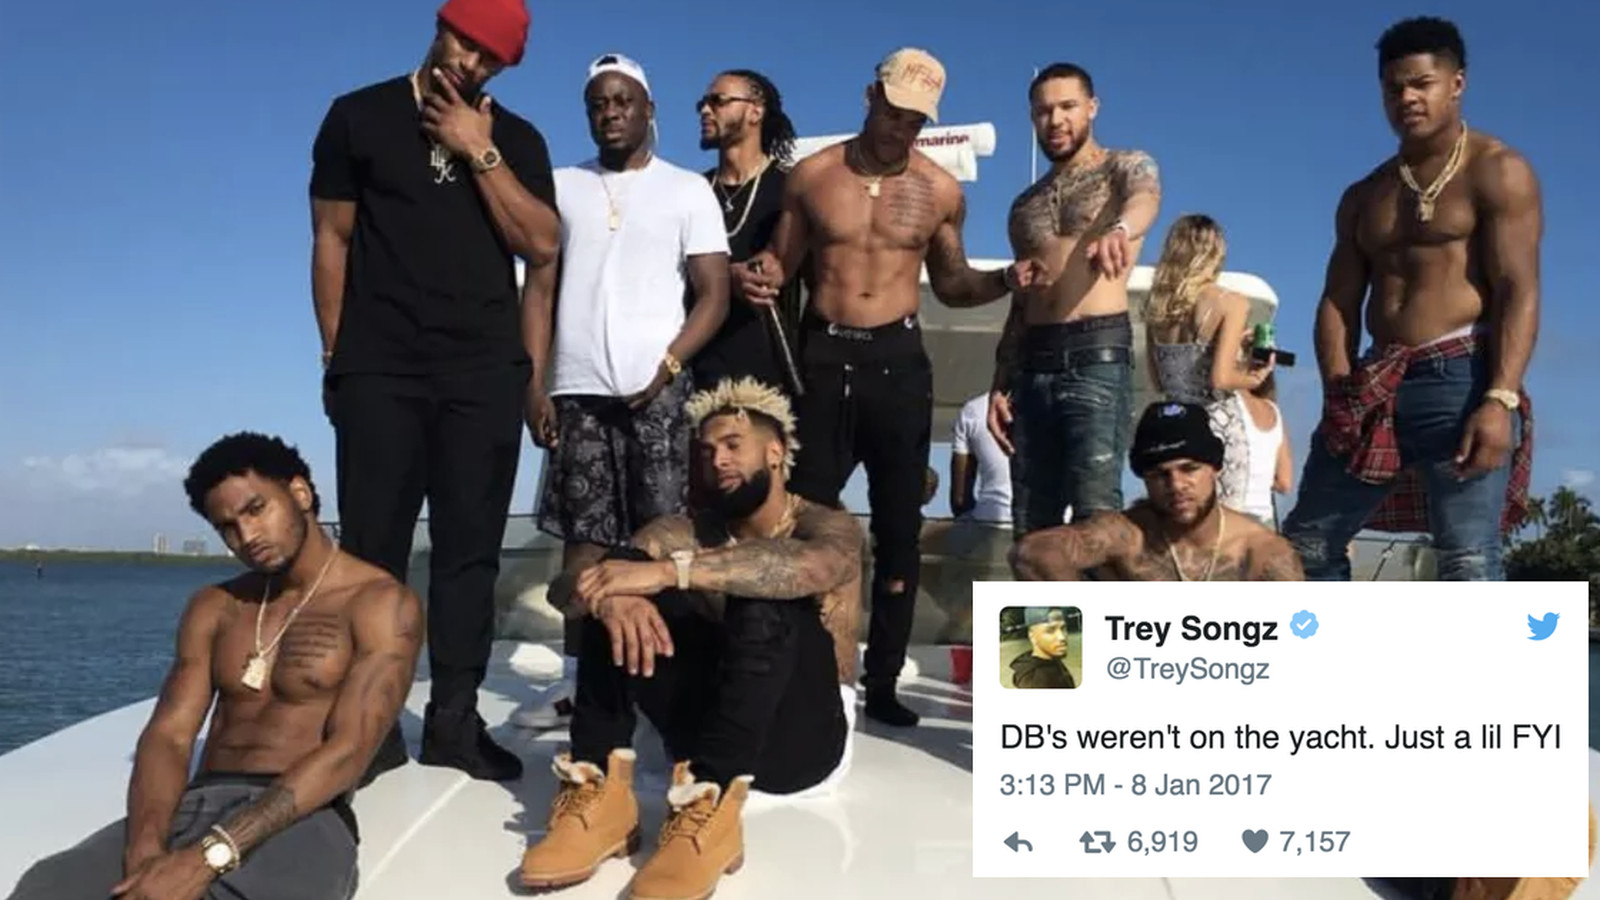 Trey Songz Defends The Giants Boat Trip While Throwing